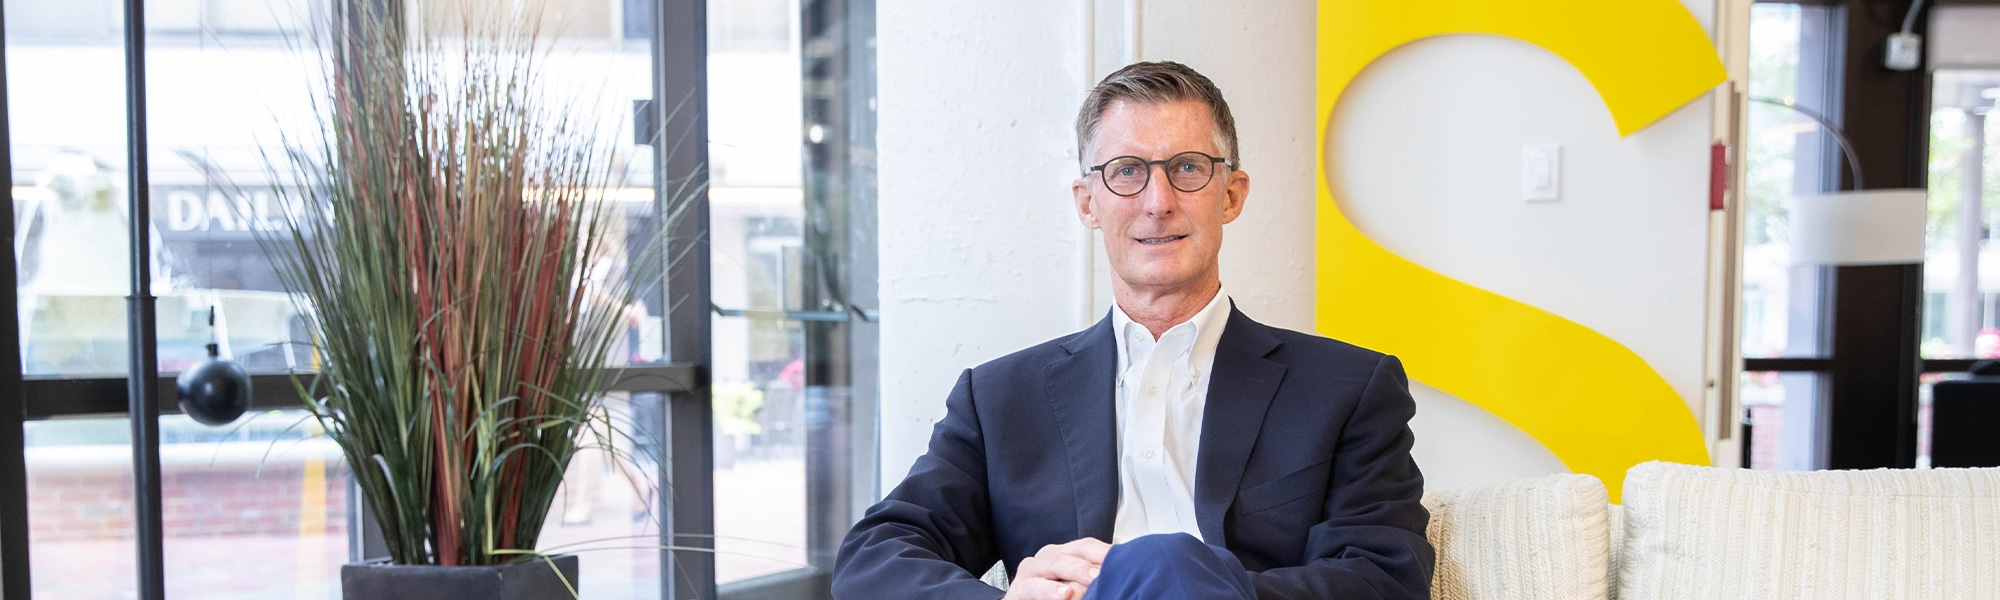 Kurt Haglund Joins Streetsense as Chief Operating Officer to Lead Company Global Operations